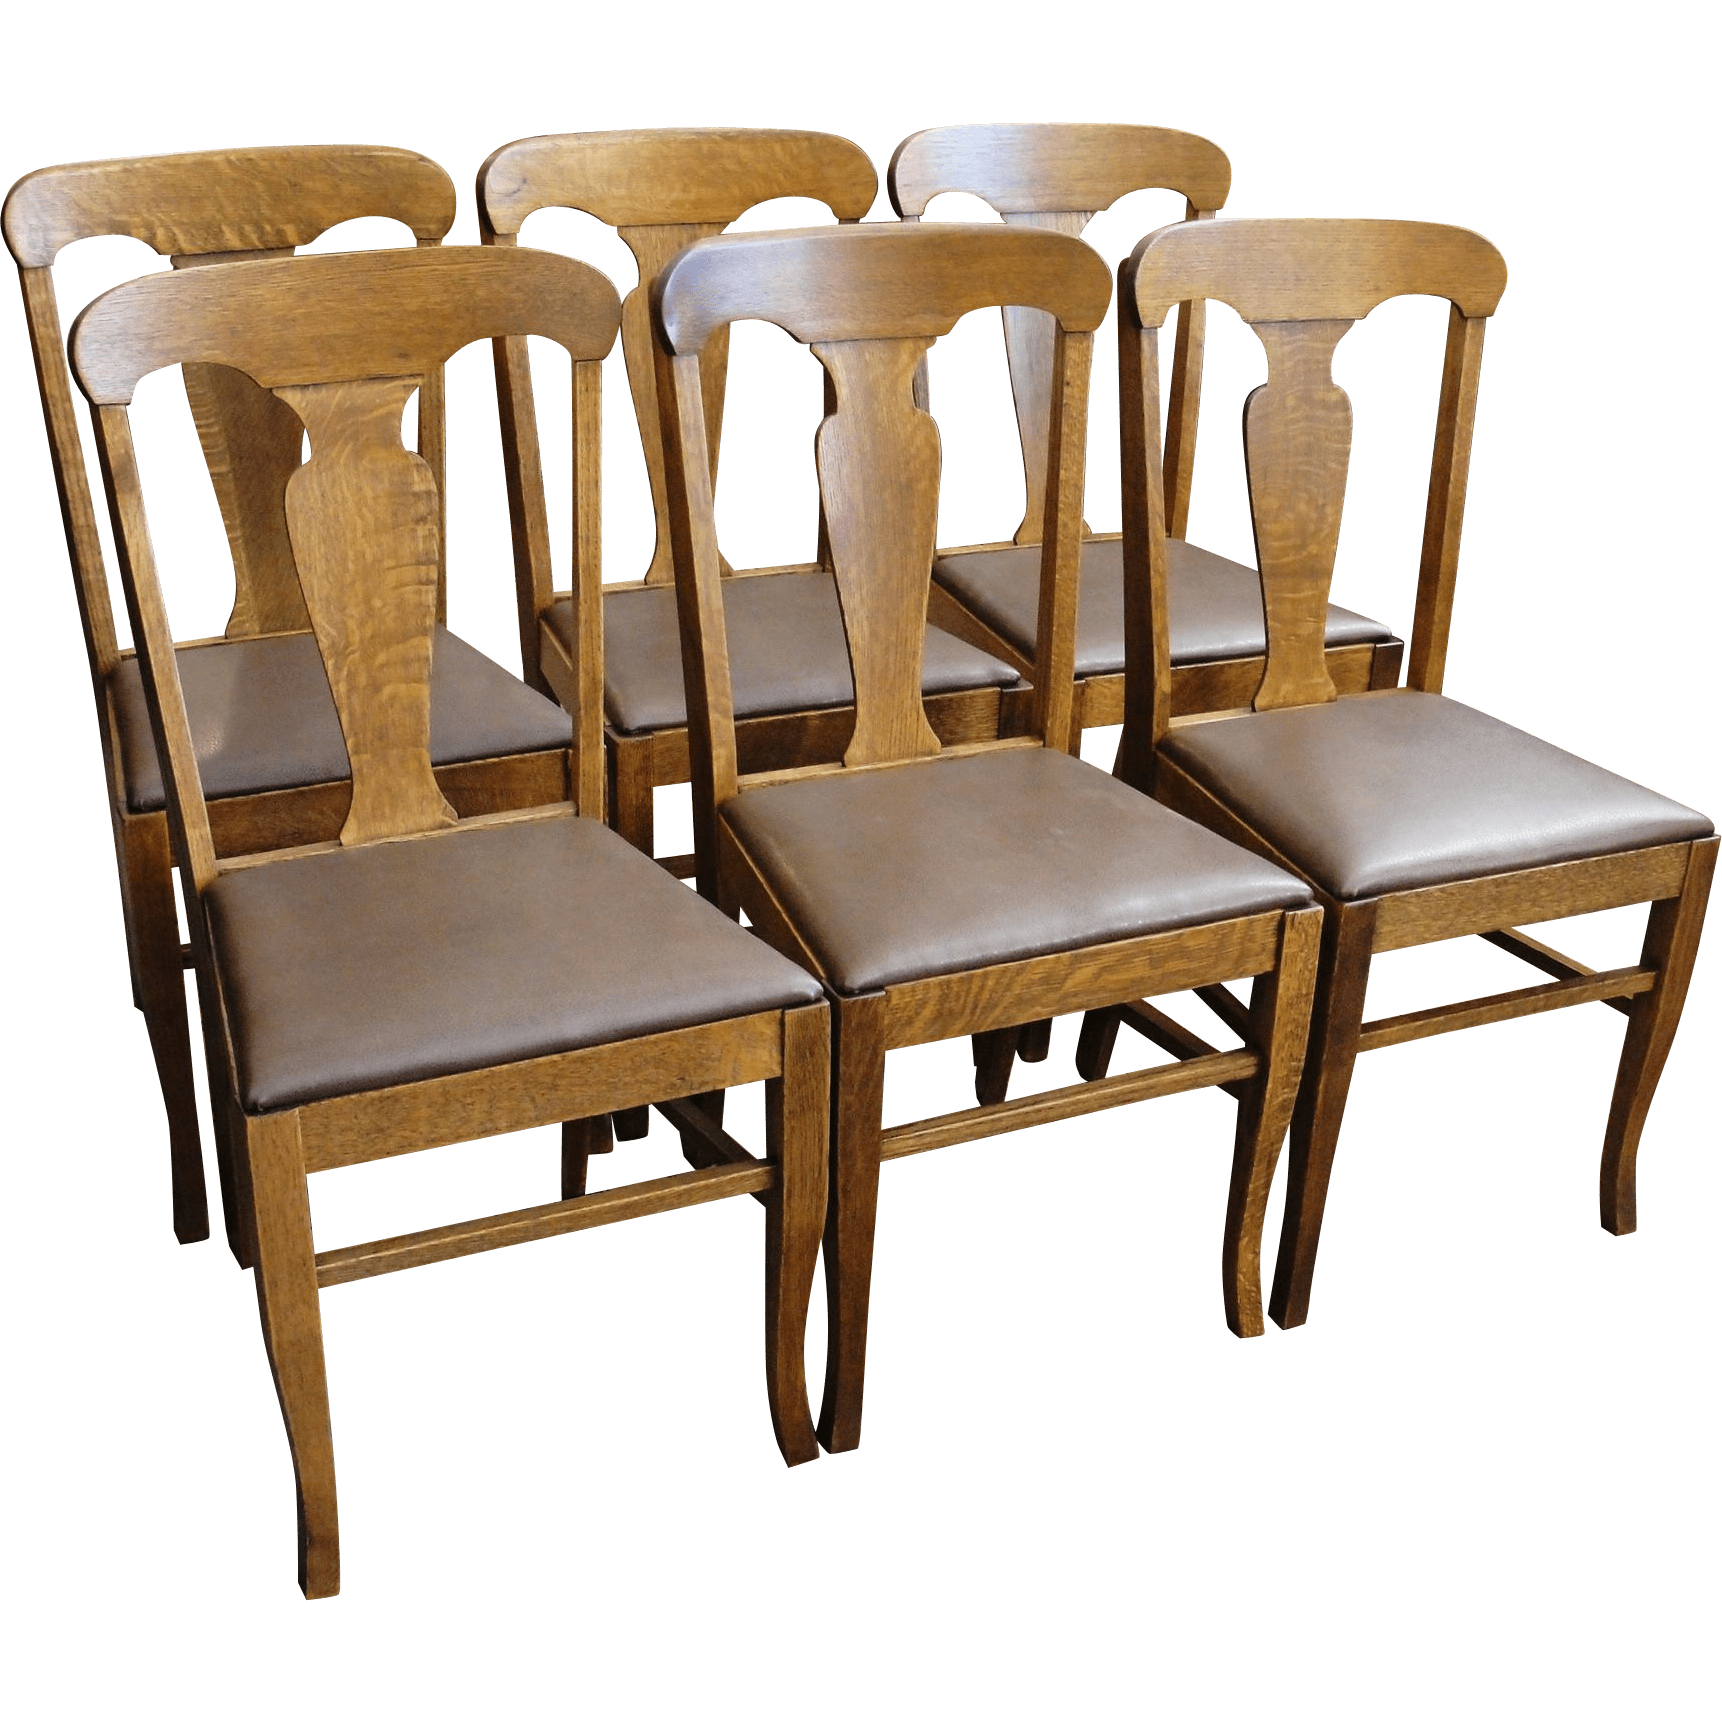 oak dining set 6 chairs graco rittenhouse high chair of antique sold on ruby lane